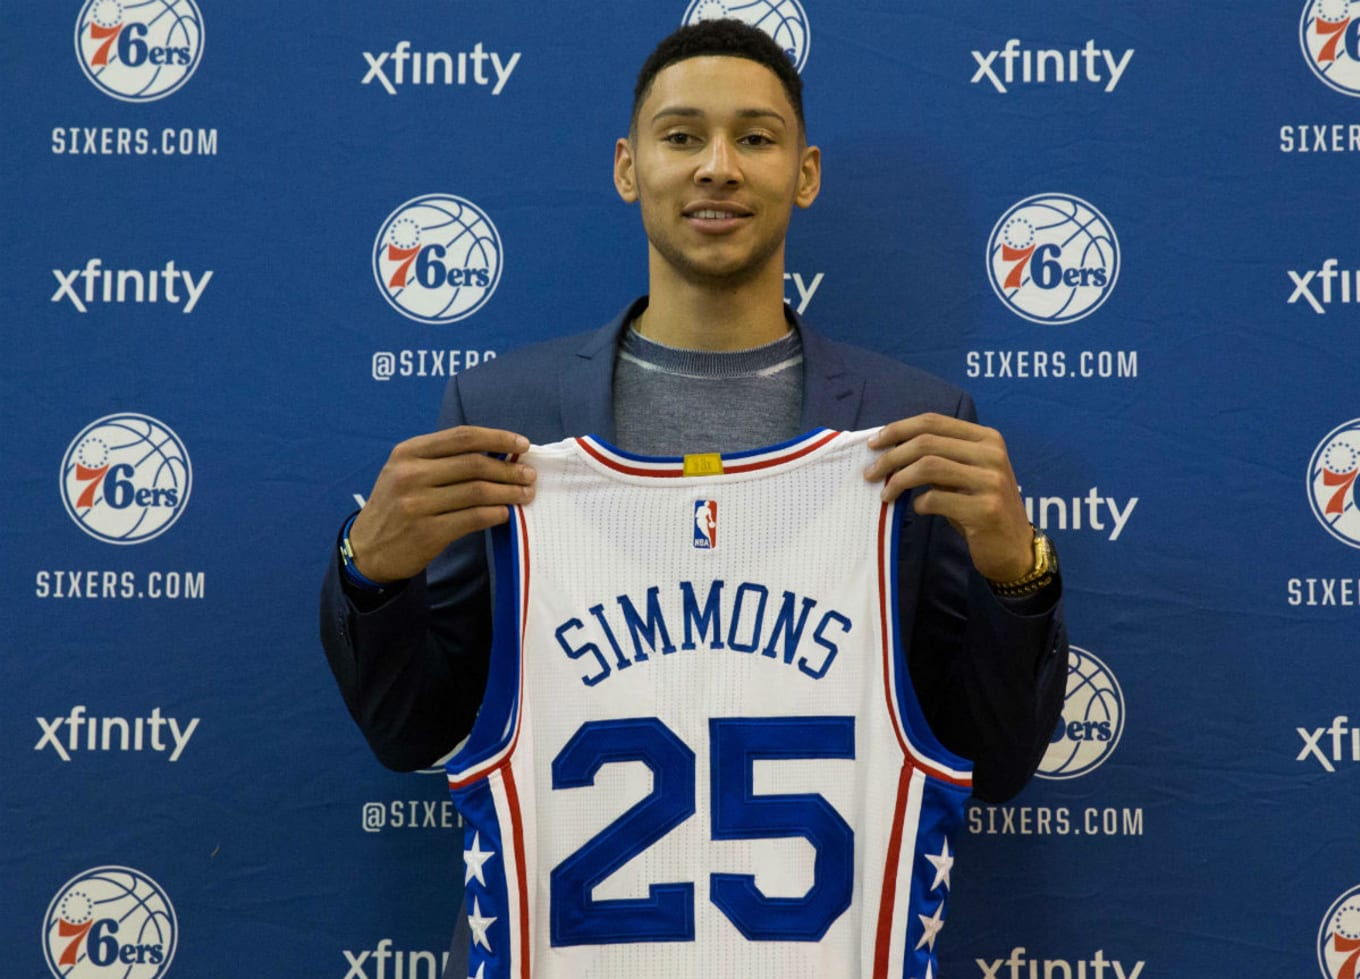 ce6a1af9f How Ben Simmons Got More Money From Nike